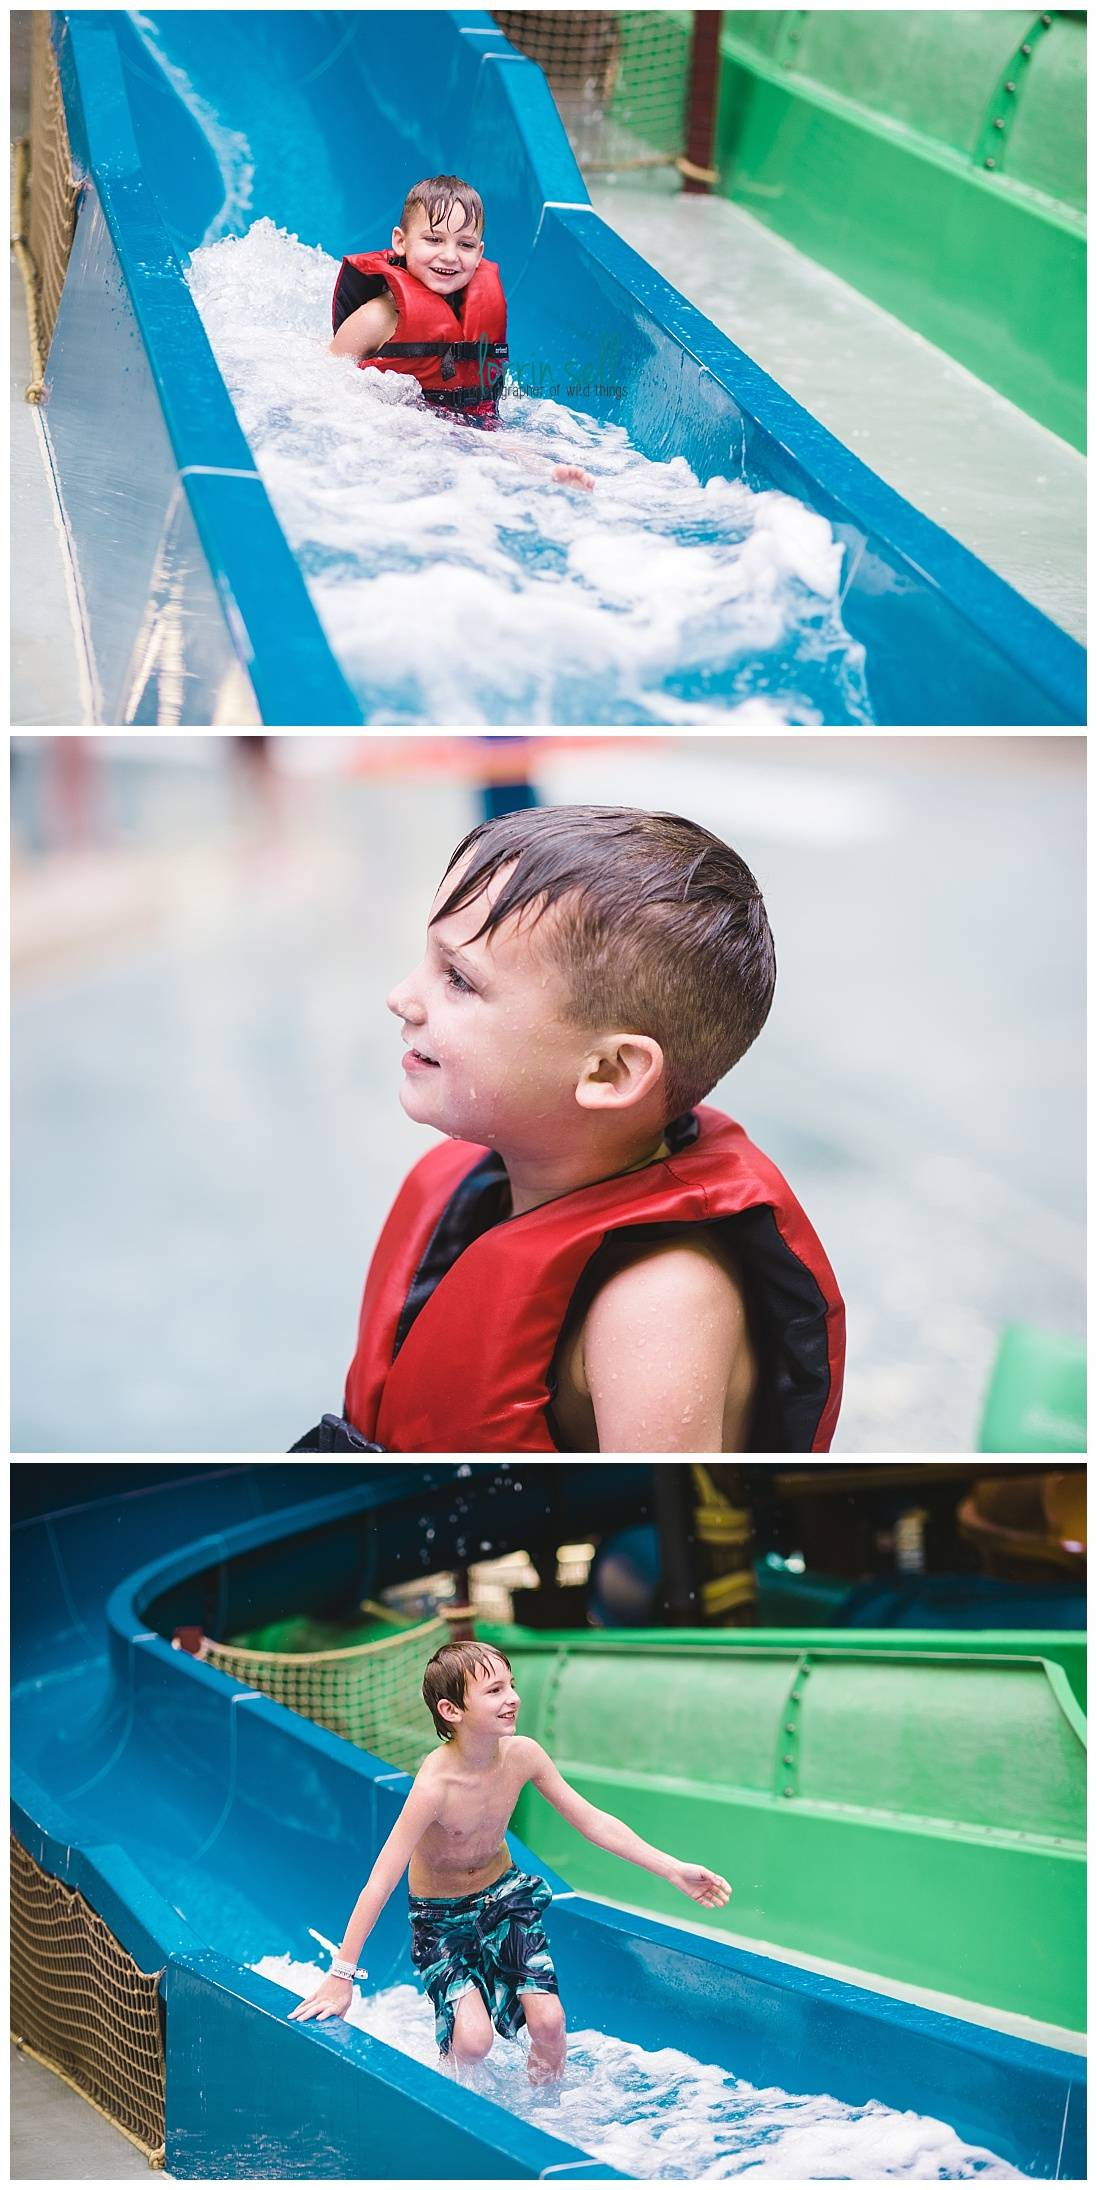 We loved the indoor water park at Kalahari Resort in the Poconos. It was the perfect winter escape, and we didn't even have to catch a plane!